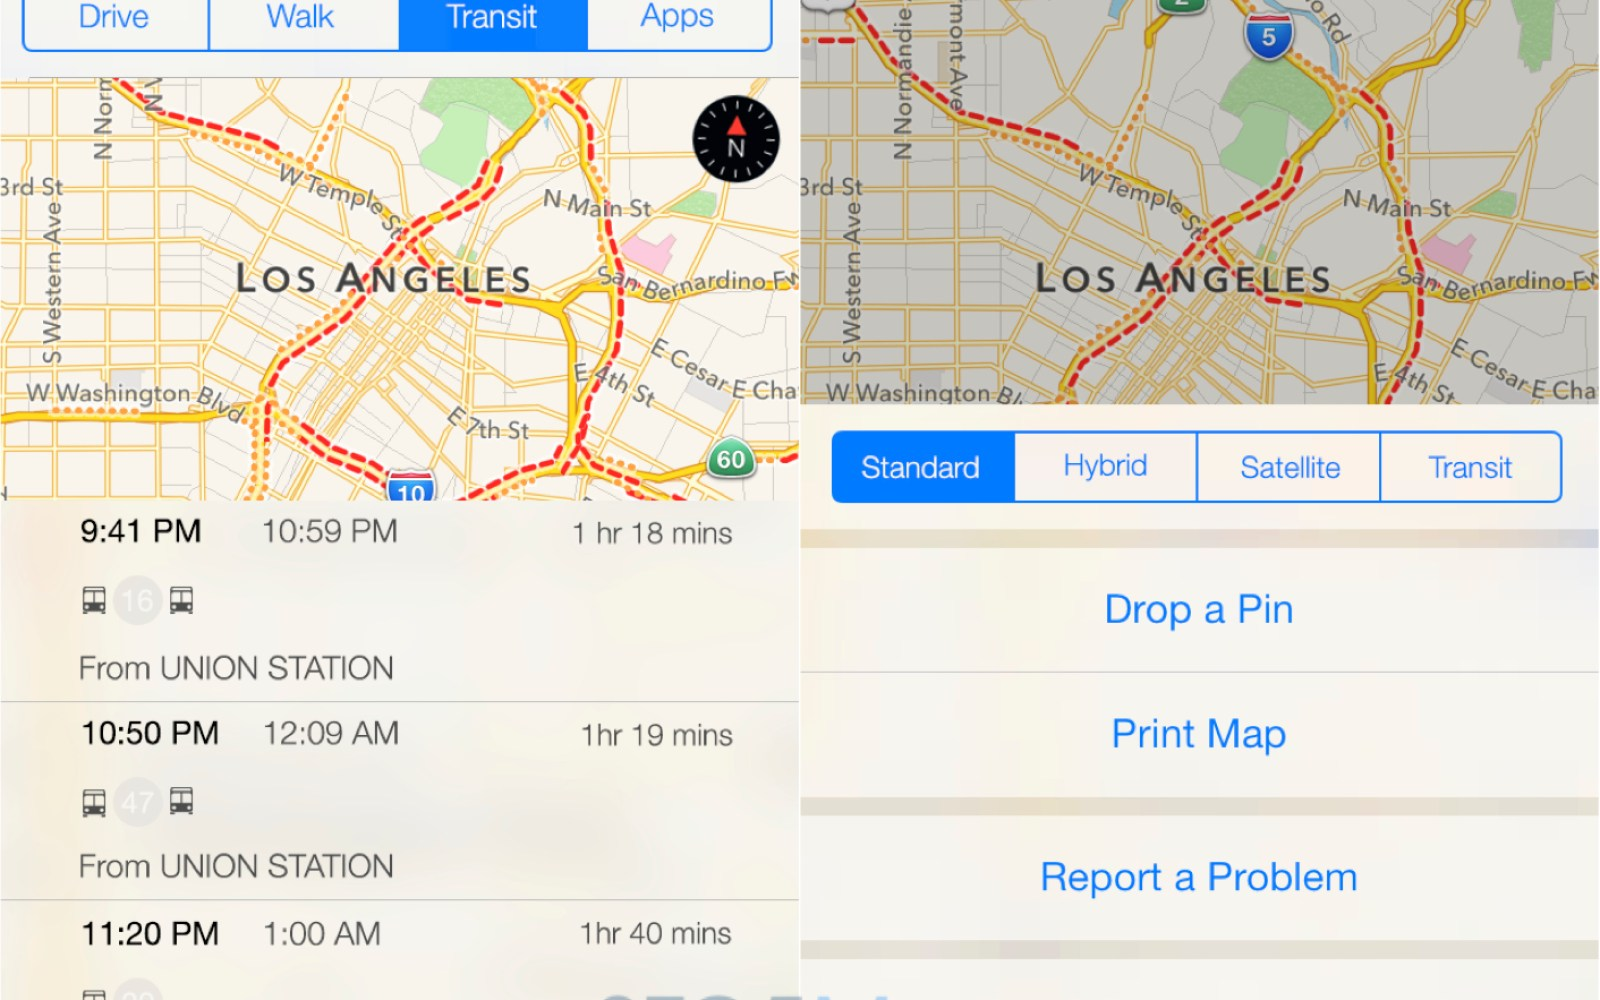 Apple readies Transit subway, train + bus guides for iOS 9 Maps, deploys robots for indoor mapping